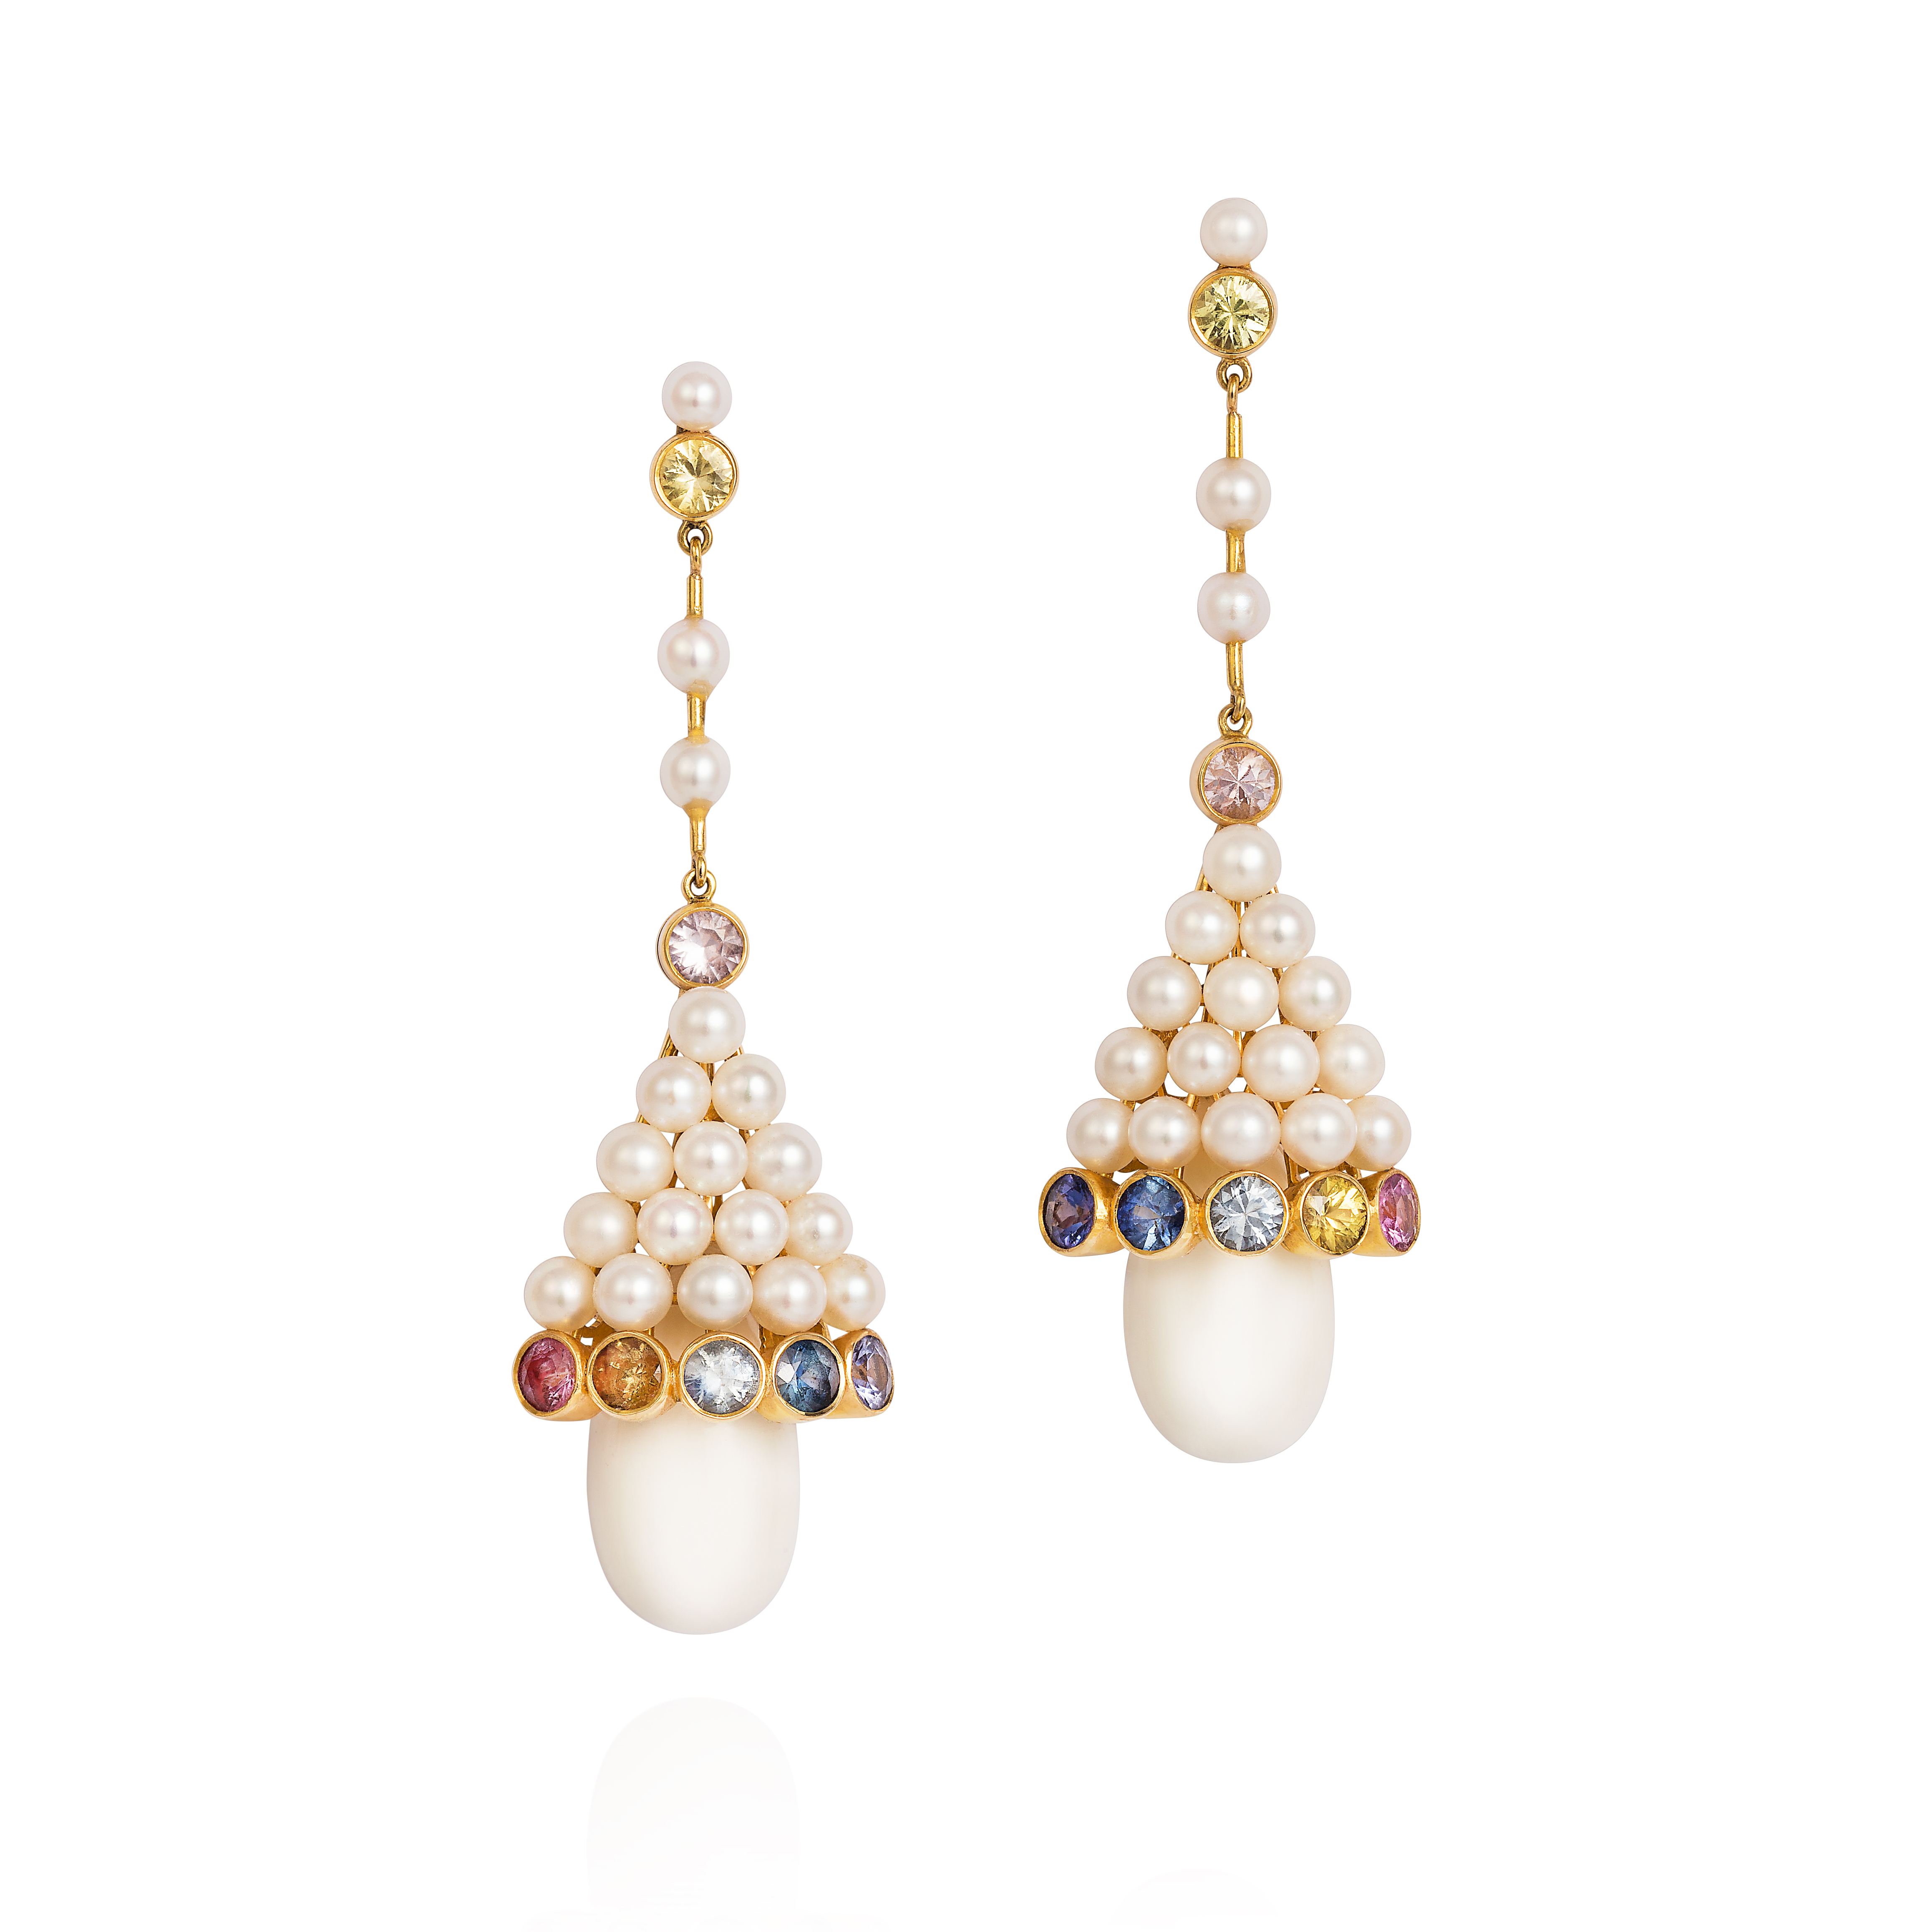 Earrings Set With Fancy Sapphires, Pearls And White Coral From The Taiwan Sea 18k Gold